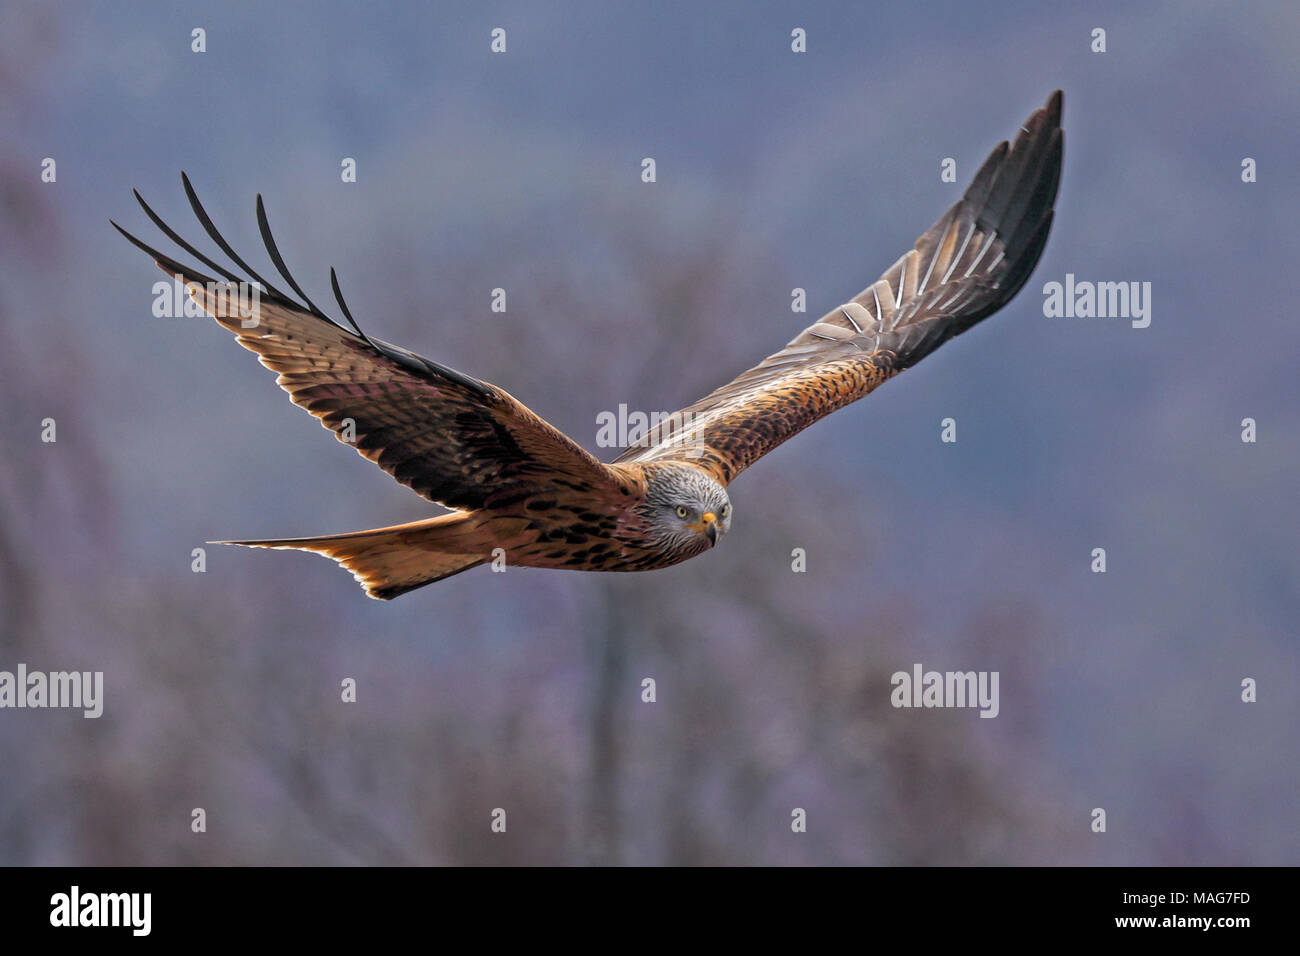 Red Kite Soaring, over the Chiltern Hills, England - Stock Image